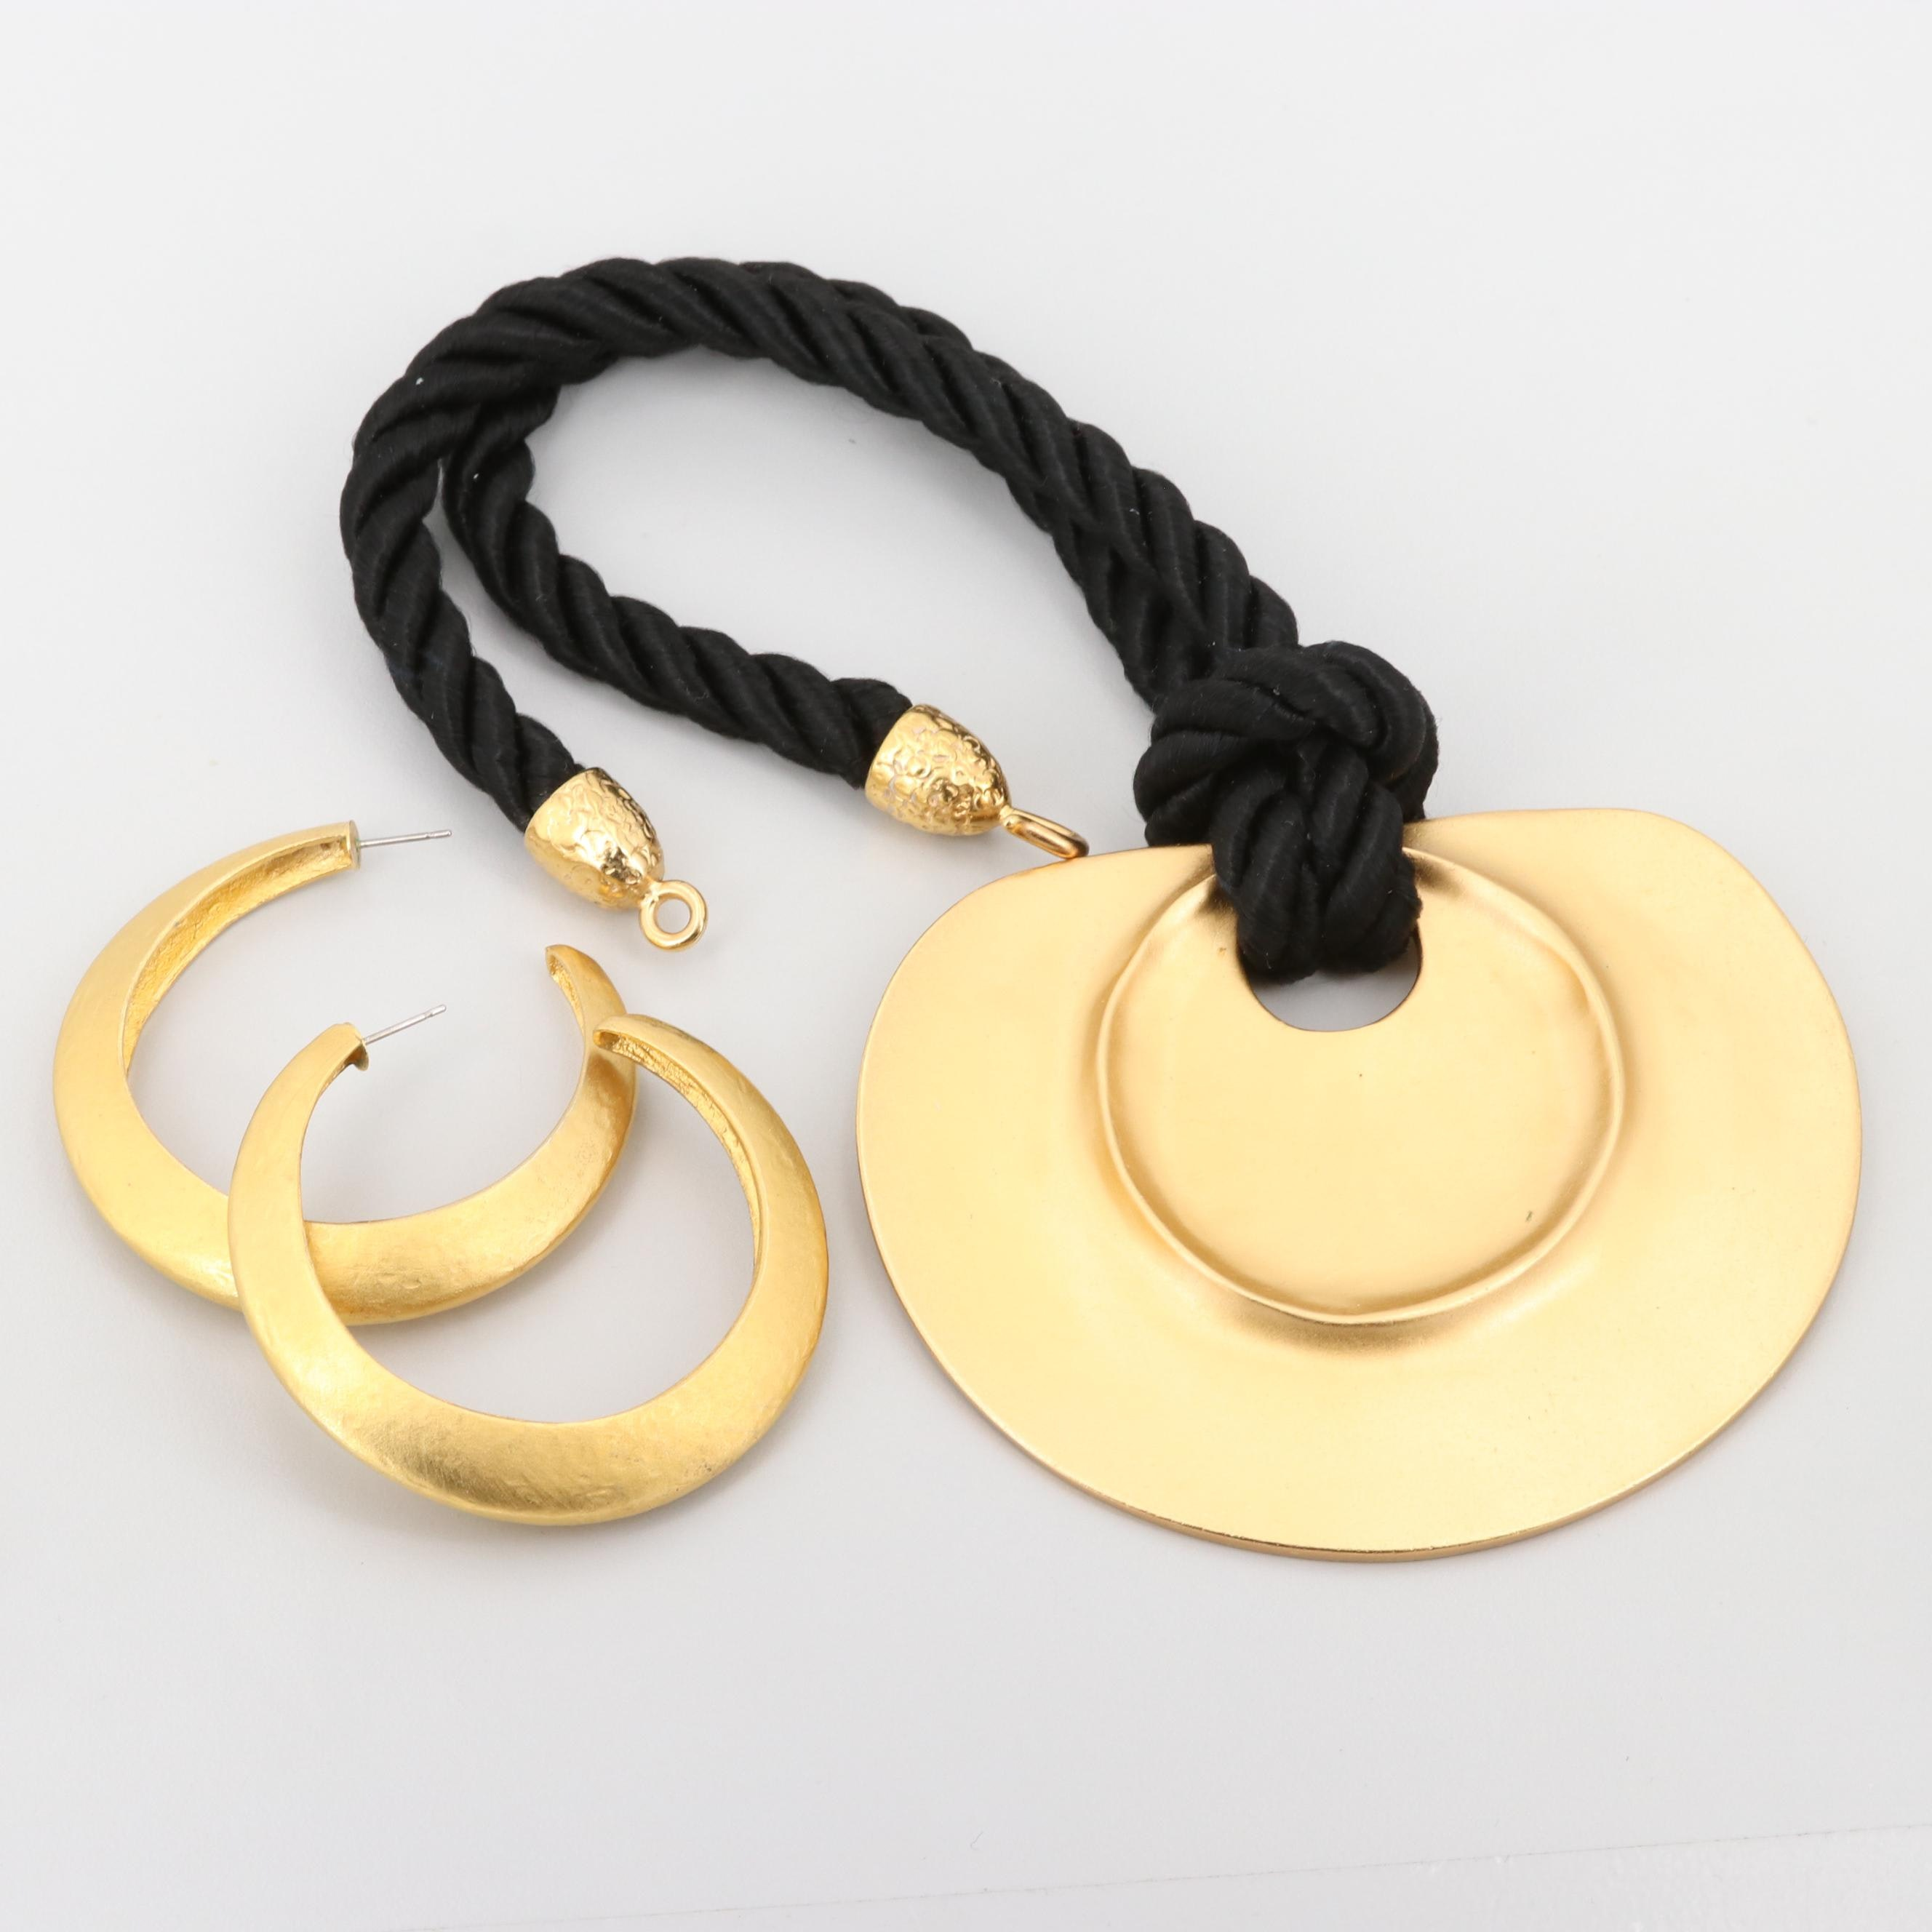 Vintage Kenneth Jay Lane Necklace and Brushed Finish Hoop Earrings